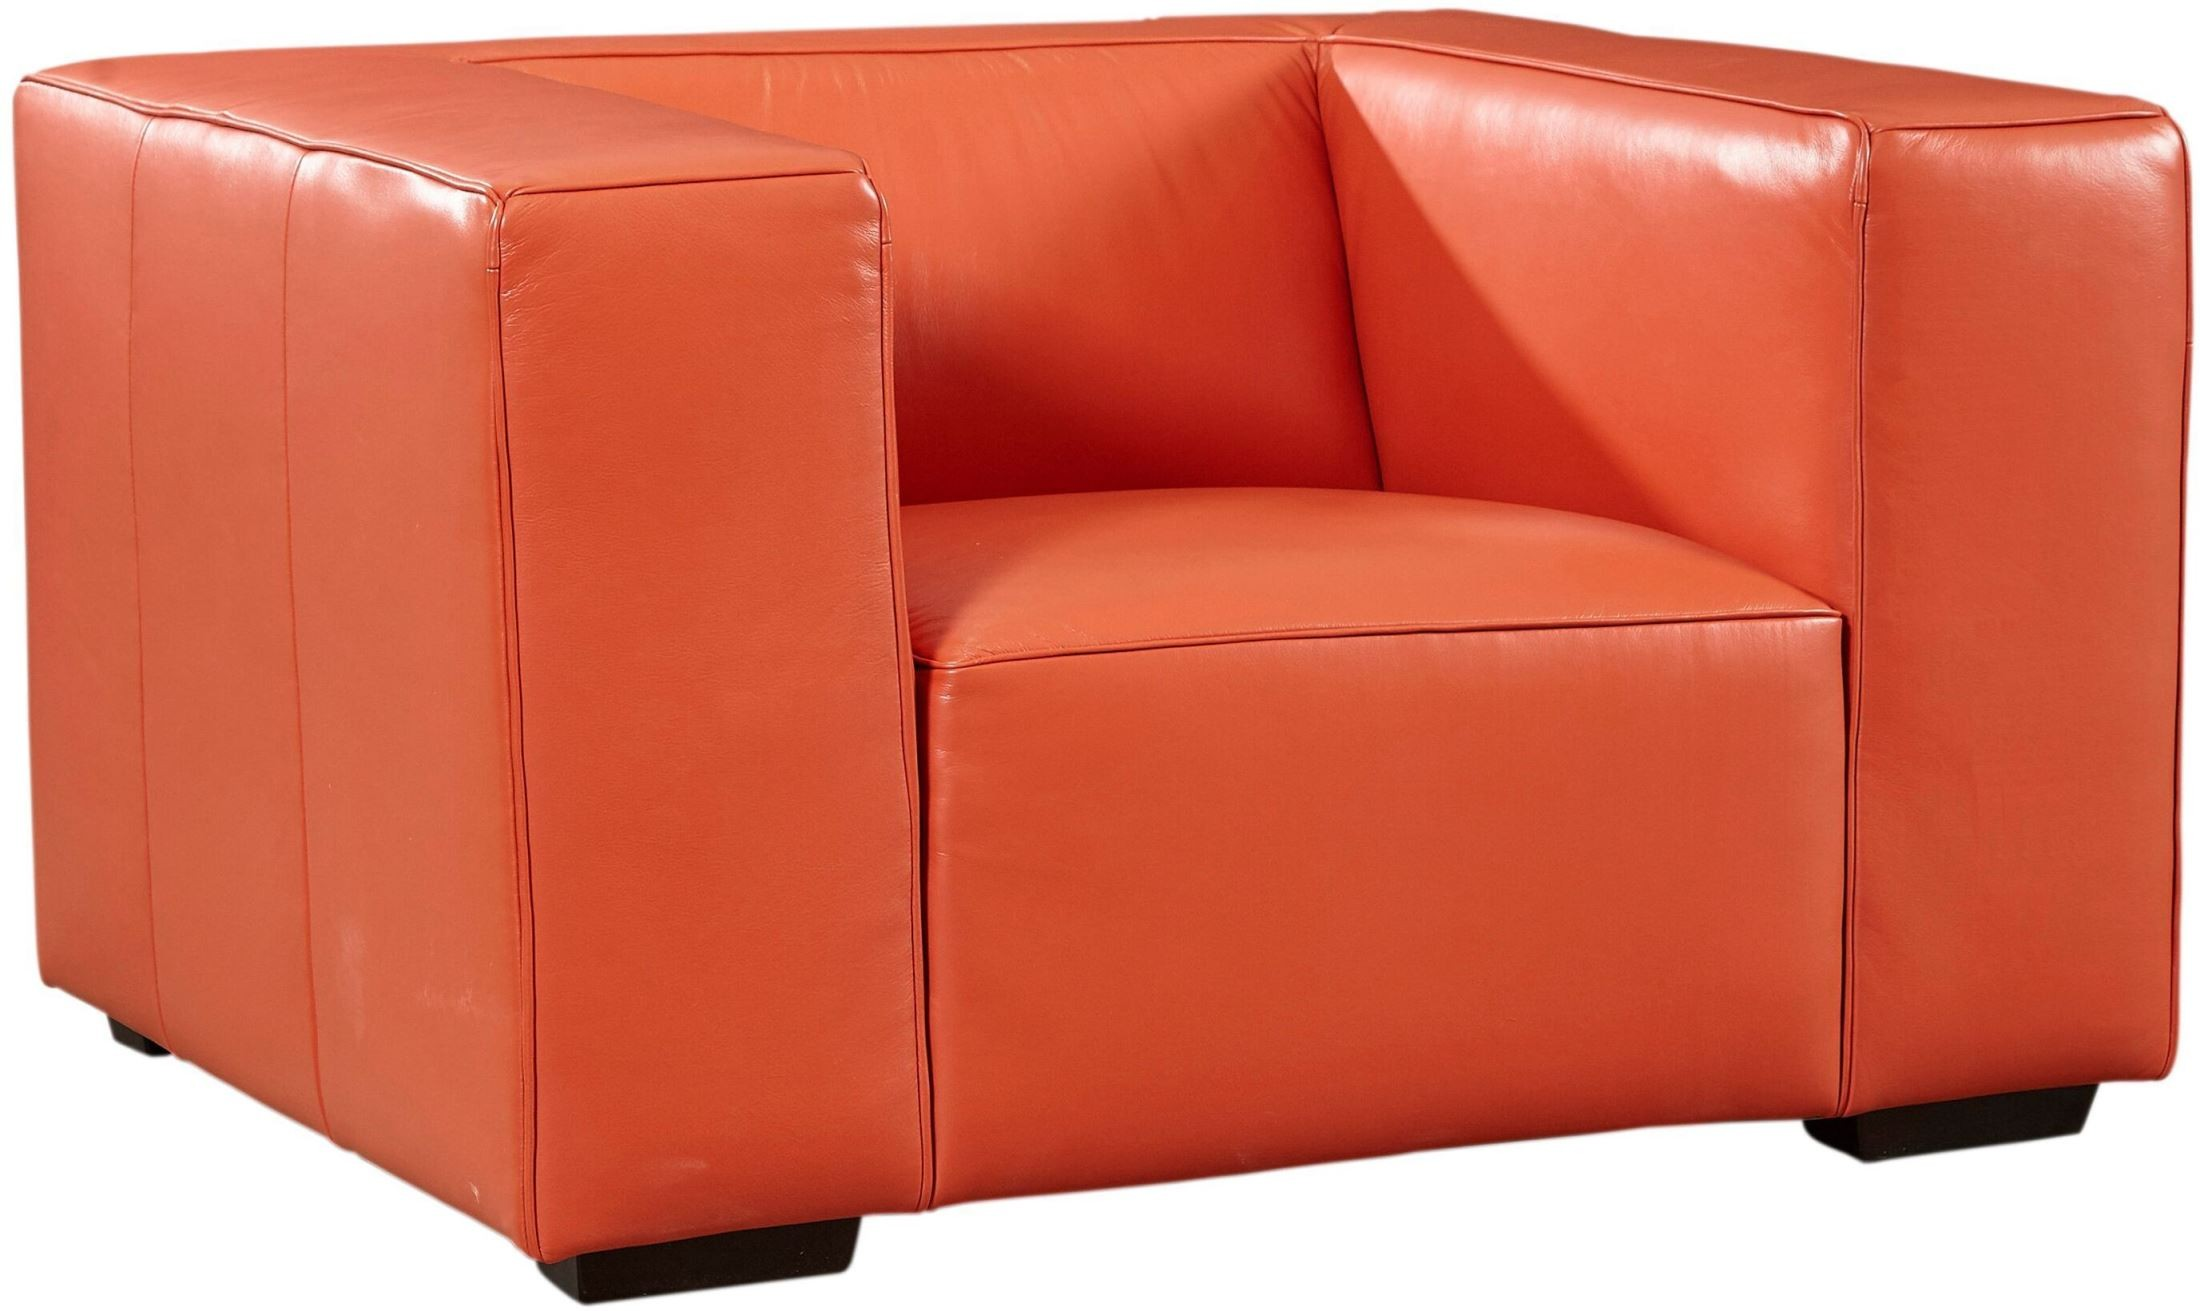 hayden tangerine top grain leather chair from lazzaro coleman furniture. Black Bedroom Furniture Sets. Home Design Ideas